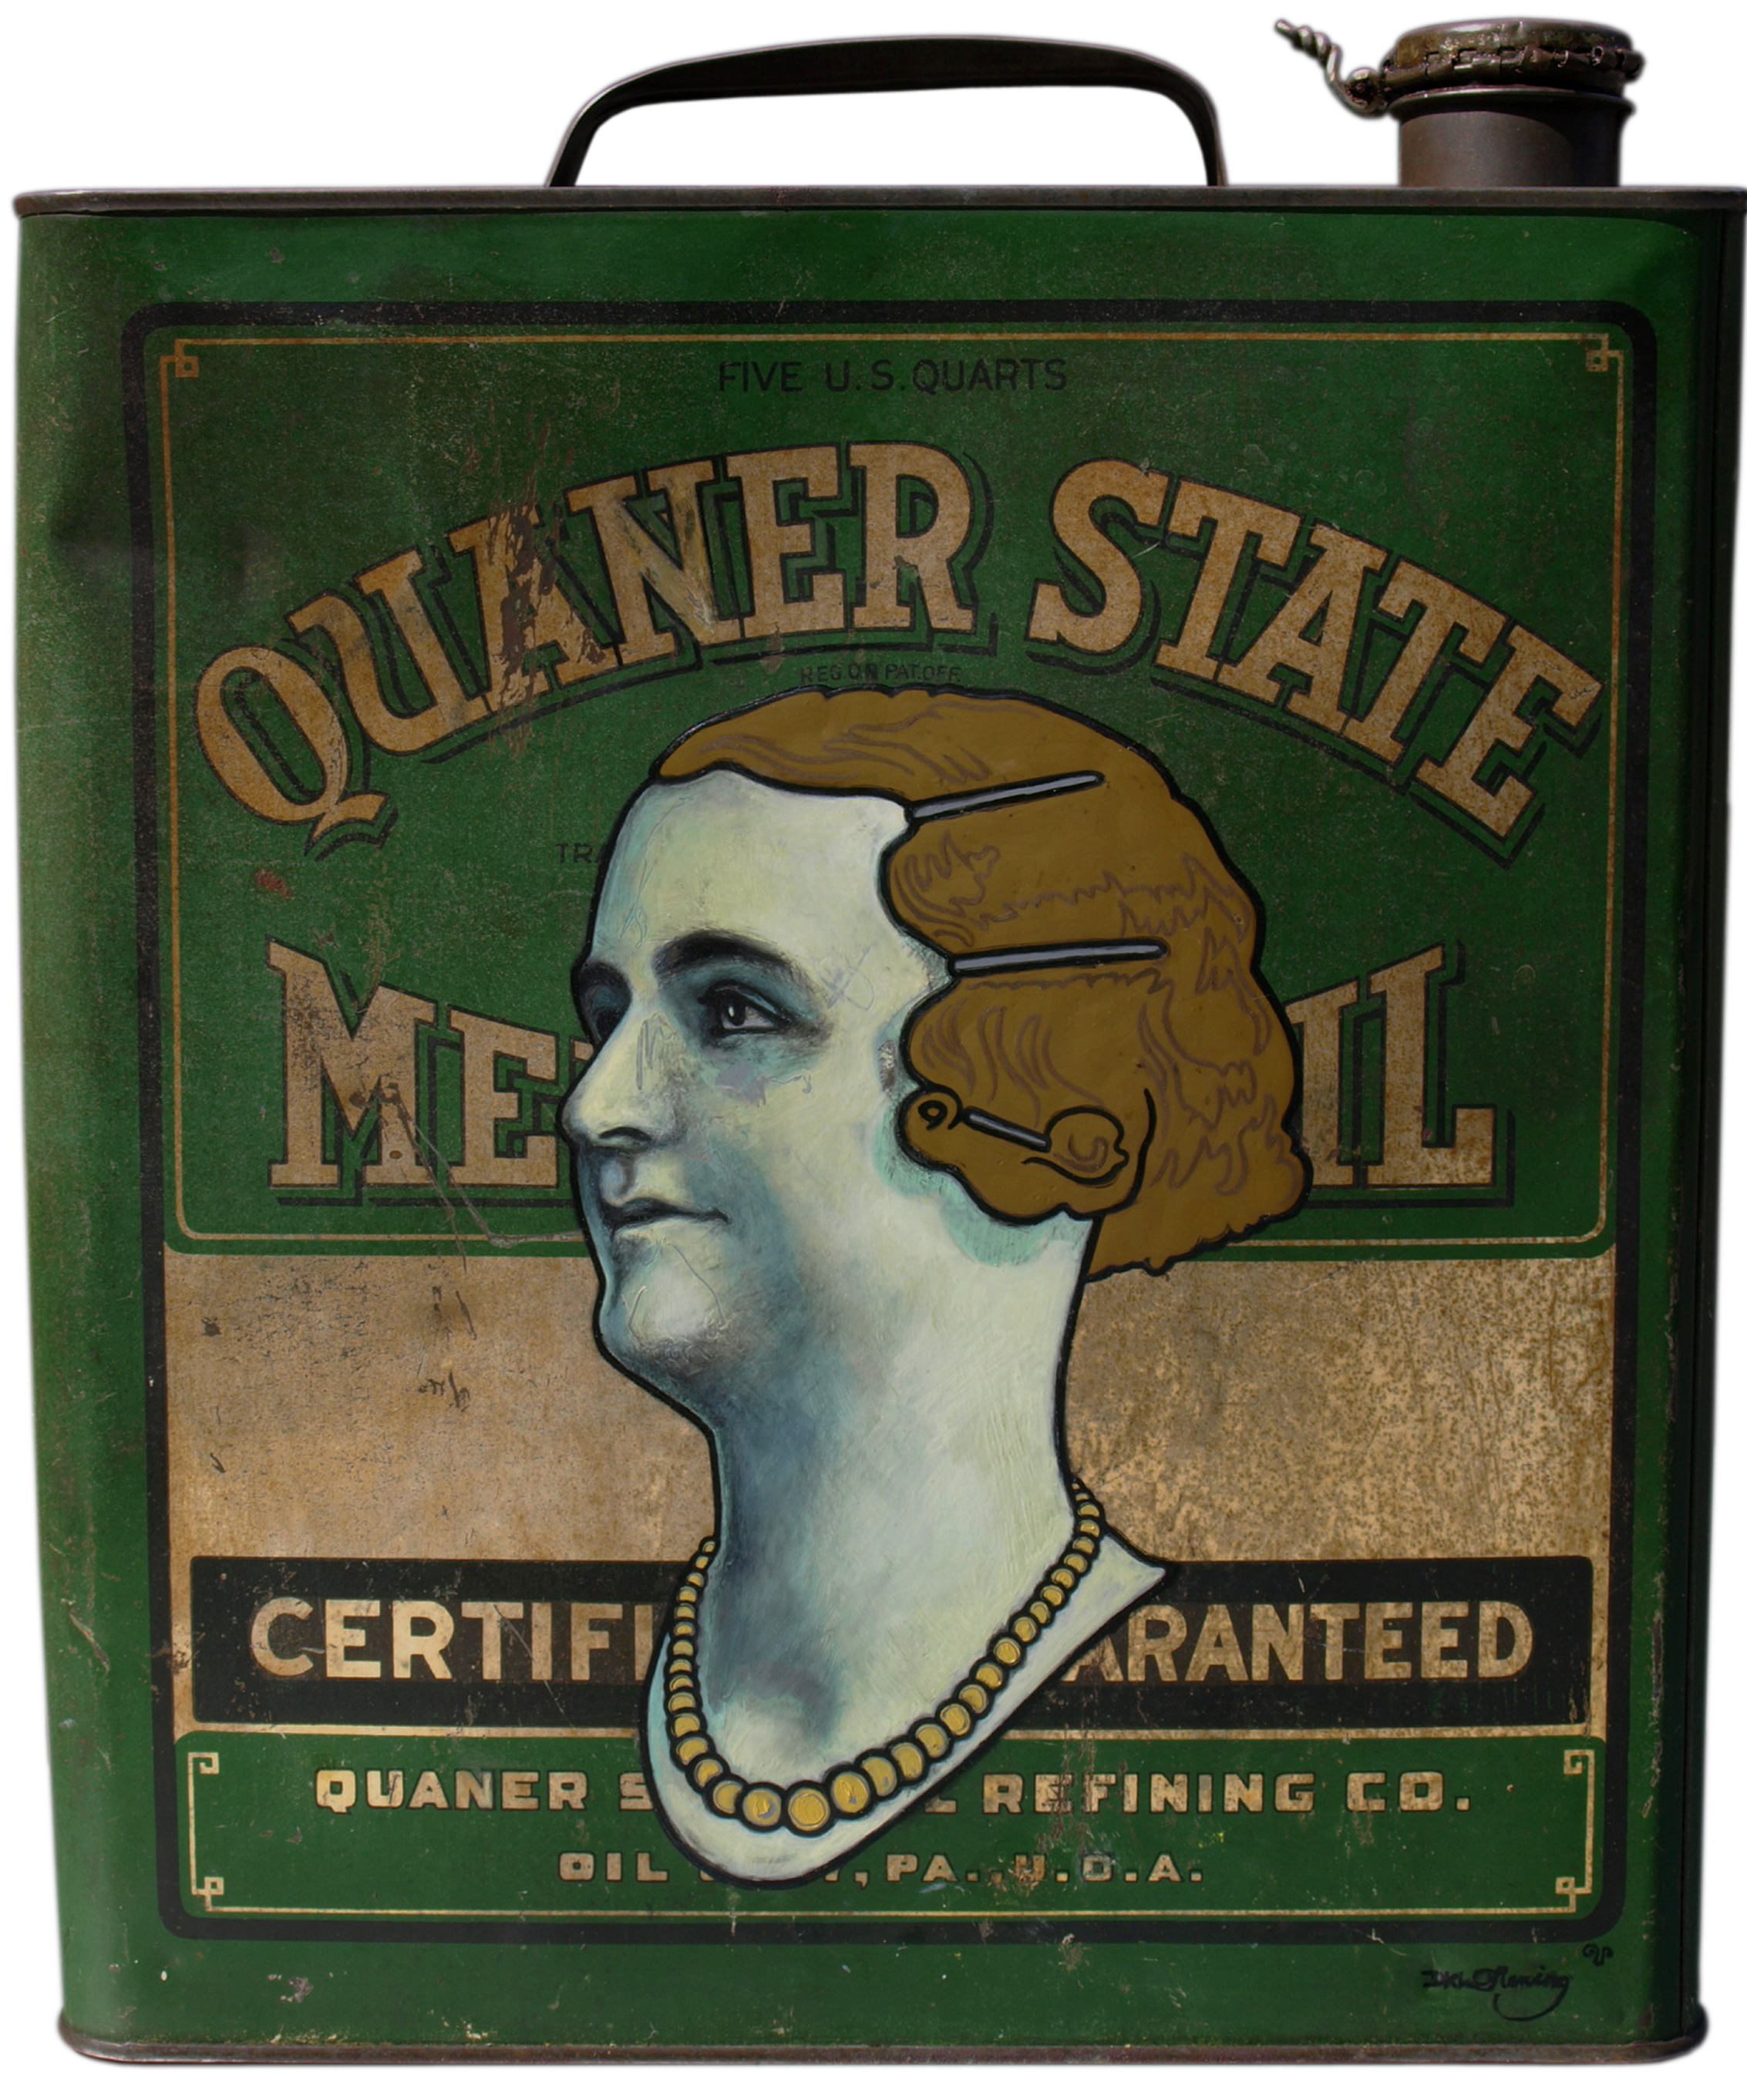 Quaner State (2008) oil and eggshell on tin can - appropriation by David Le Fleming